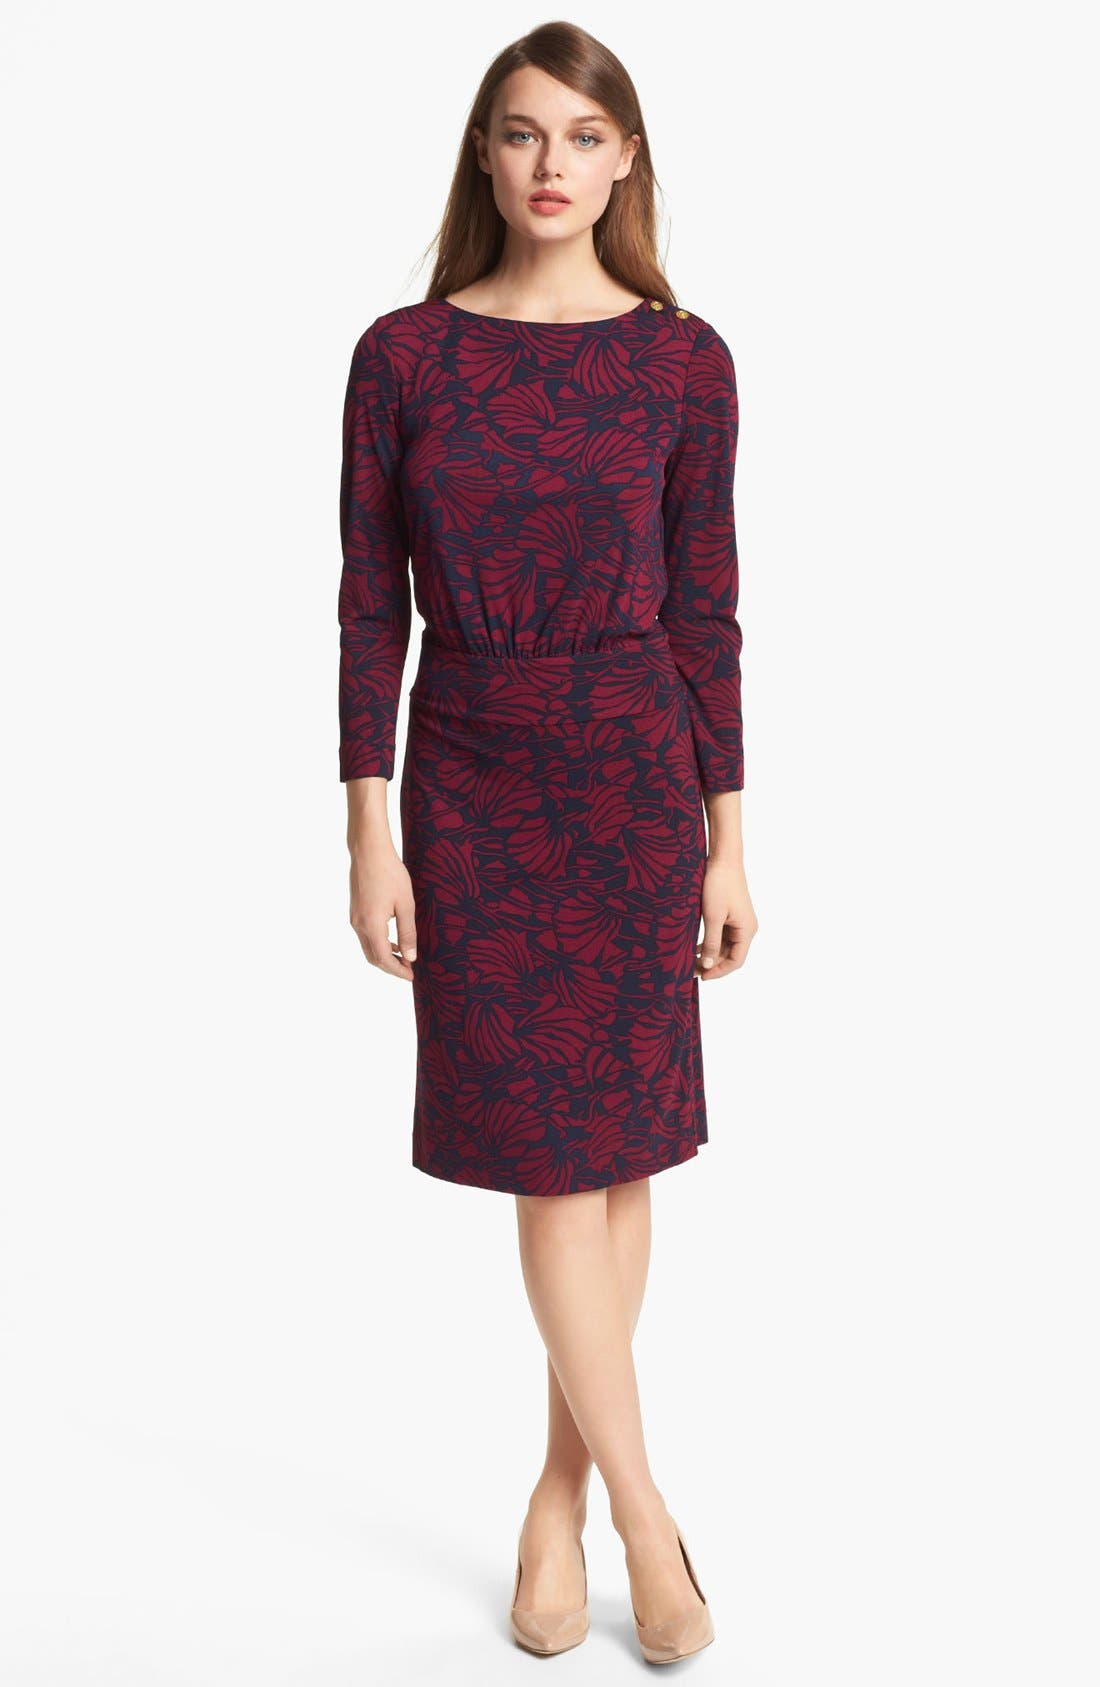 Alternate Image 1 Selected - Tory Burch 'Etta' Print Blouson Dress